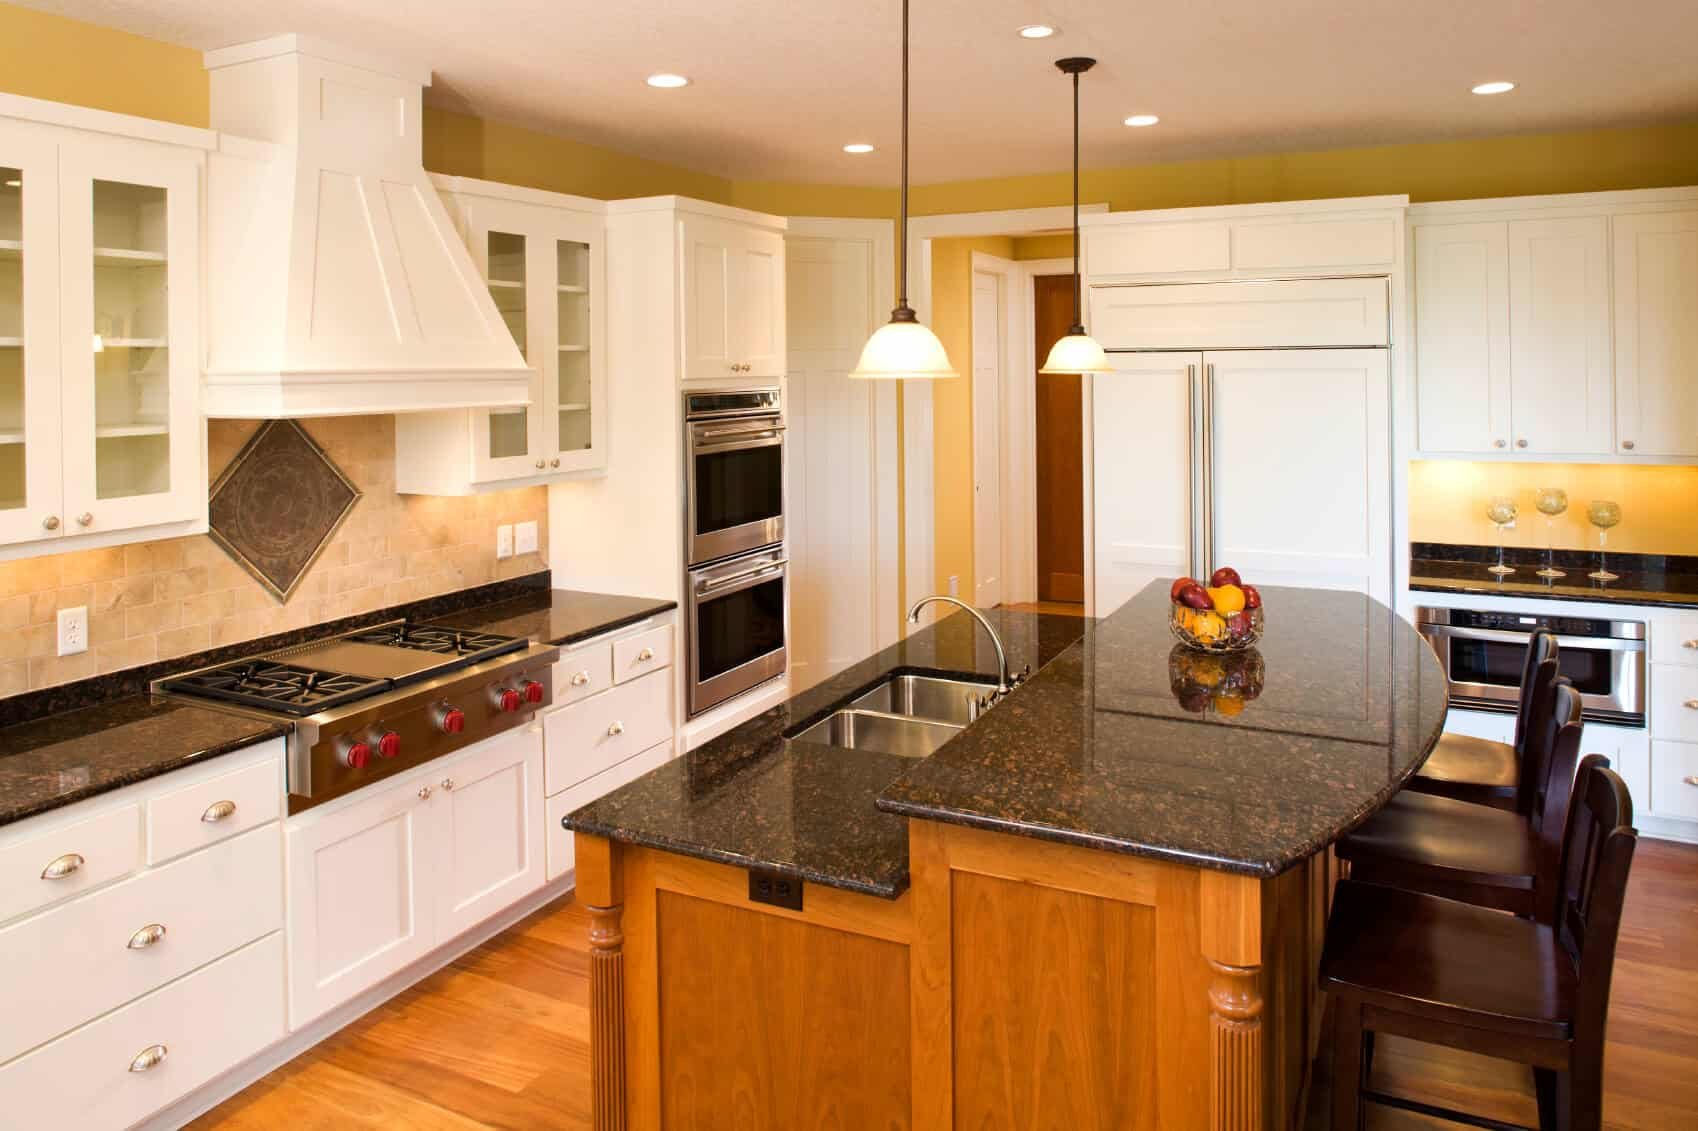 Here we have another two-tiered island adding contrast to a kitchen with warm natural wood and dark marble countertop.  Compared to others in this gallery, this is an example of a smaller kitchen island.